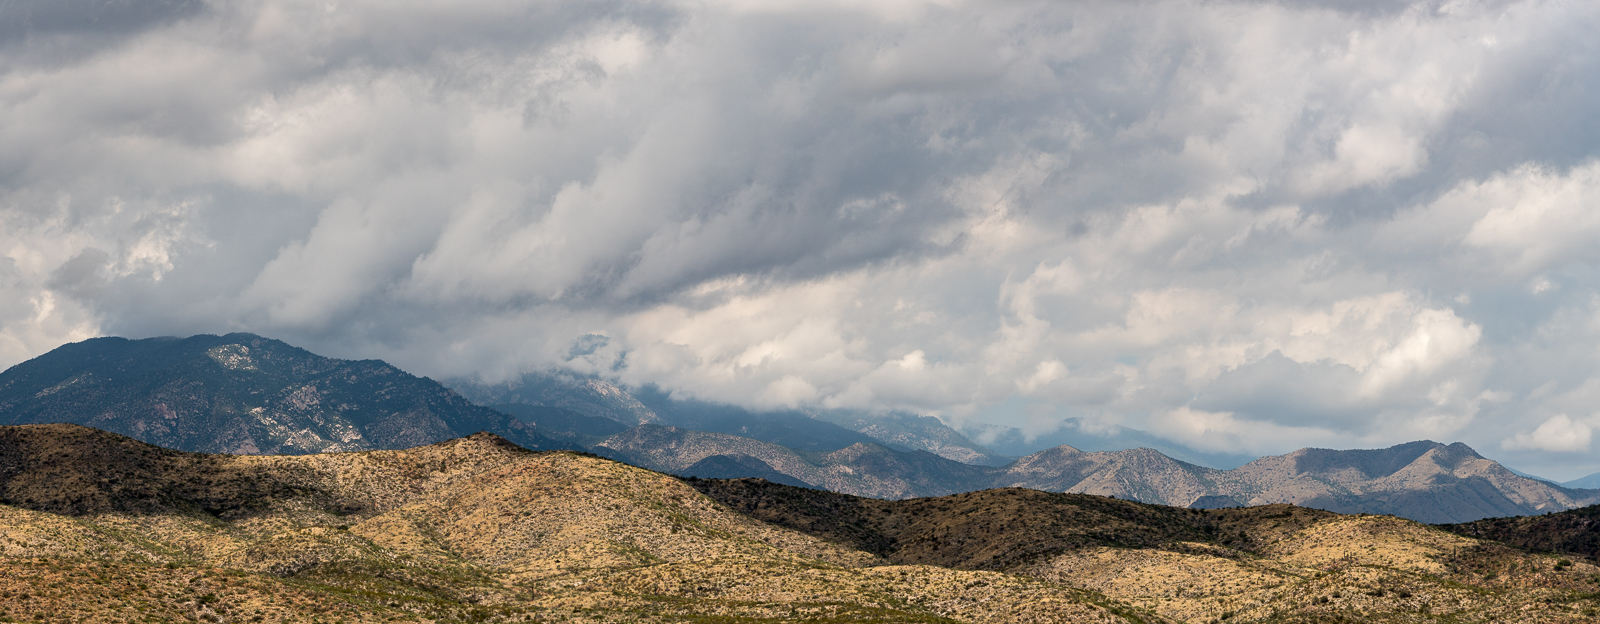 A storm over the Santa Catalina Mountains - A-7 Ranch between Redington Road and the San Pedro River.